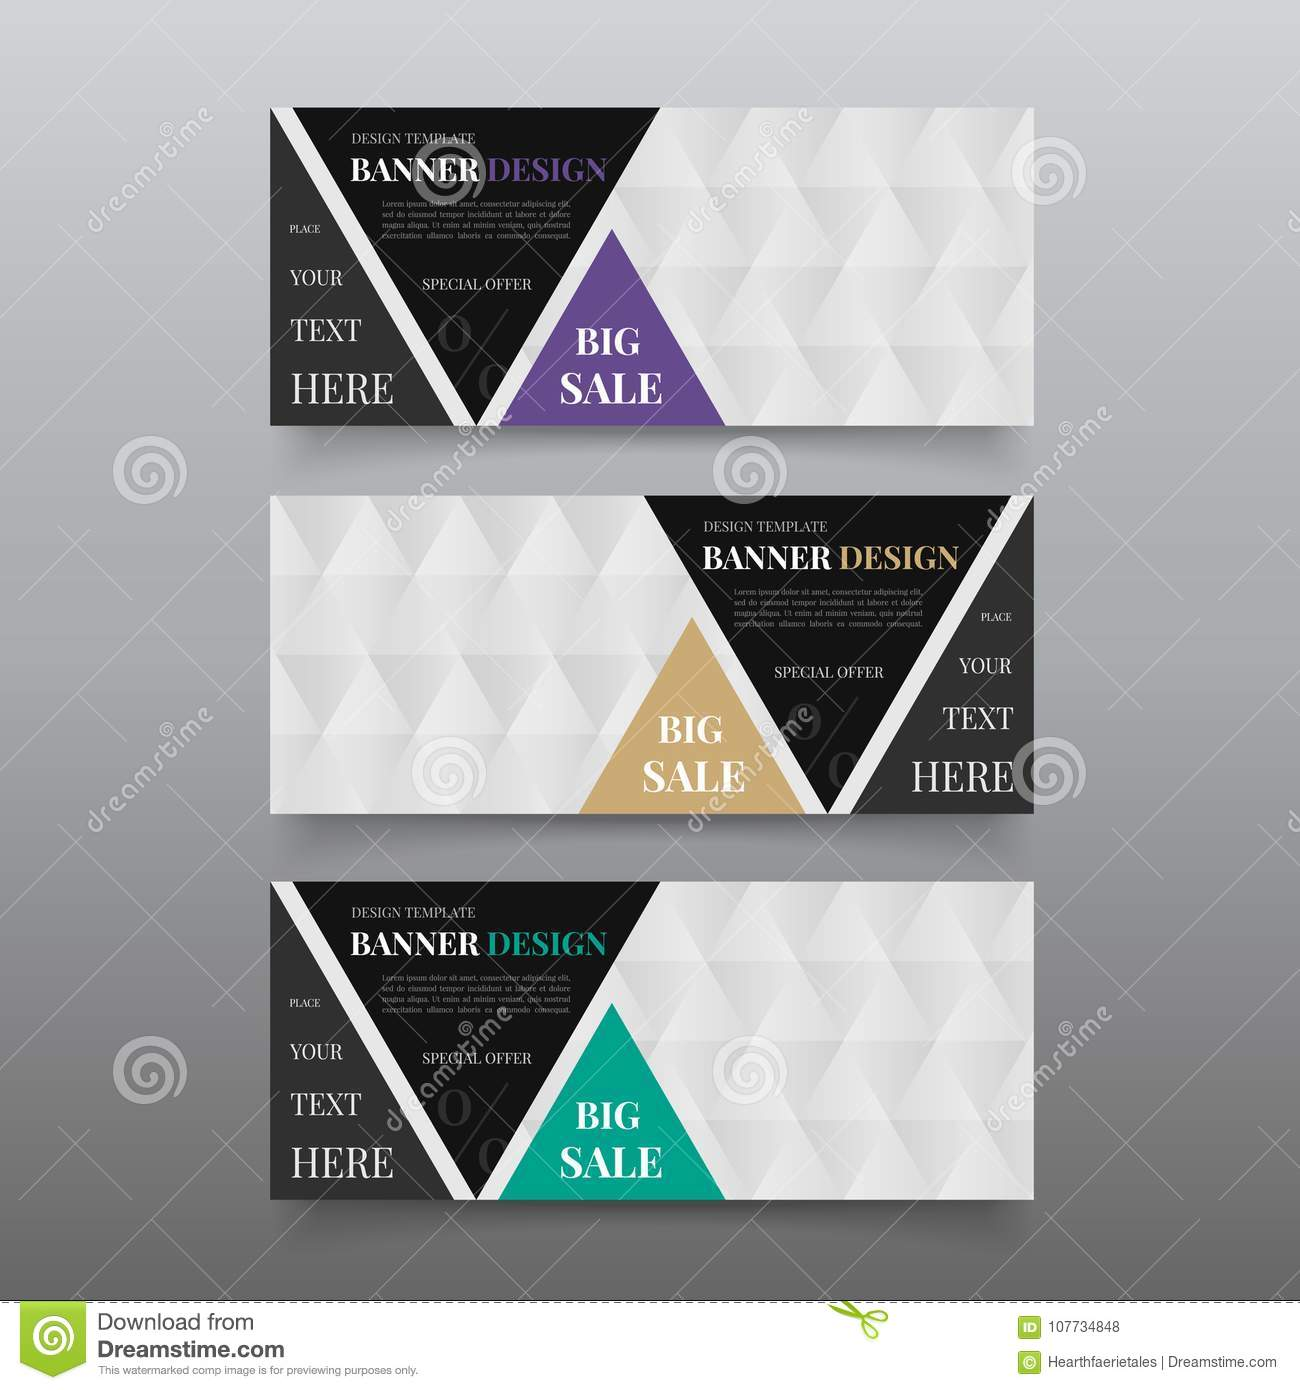 Triangle banner design templates web banner design vector website triangle banner design templates web banner design vector website banner template with text button business promotional banne maxwellsz